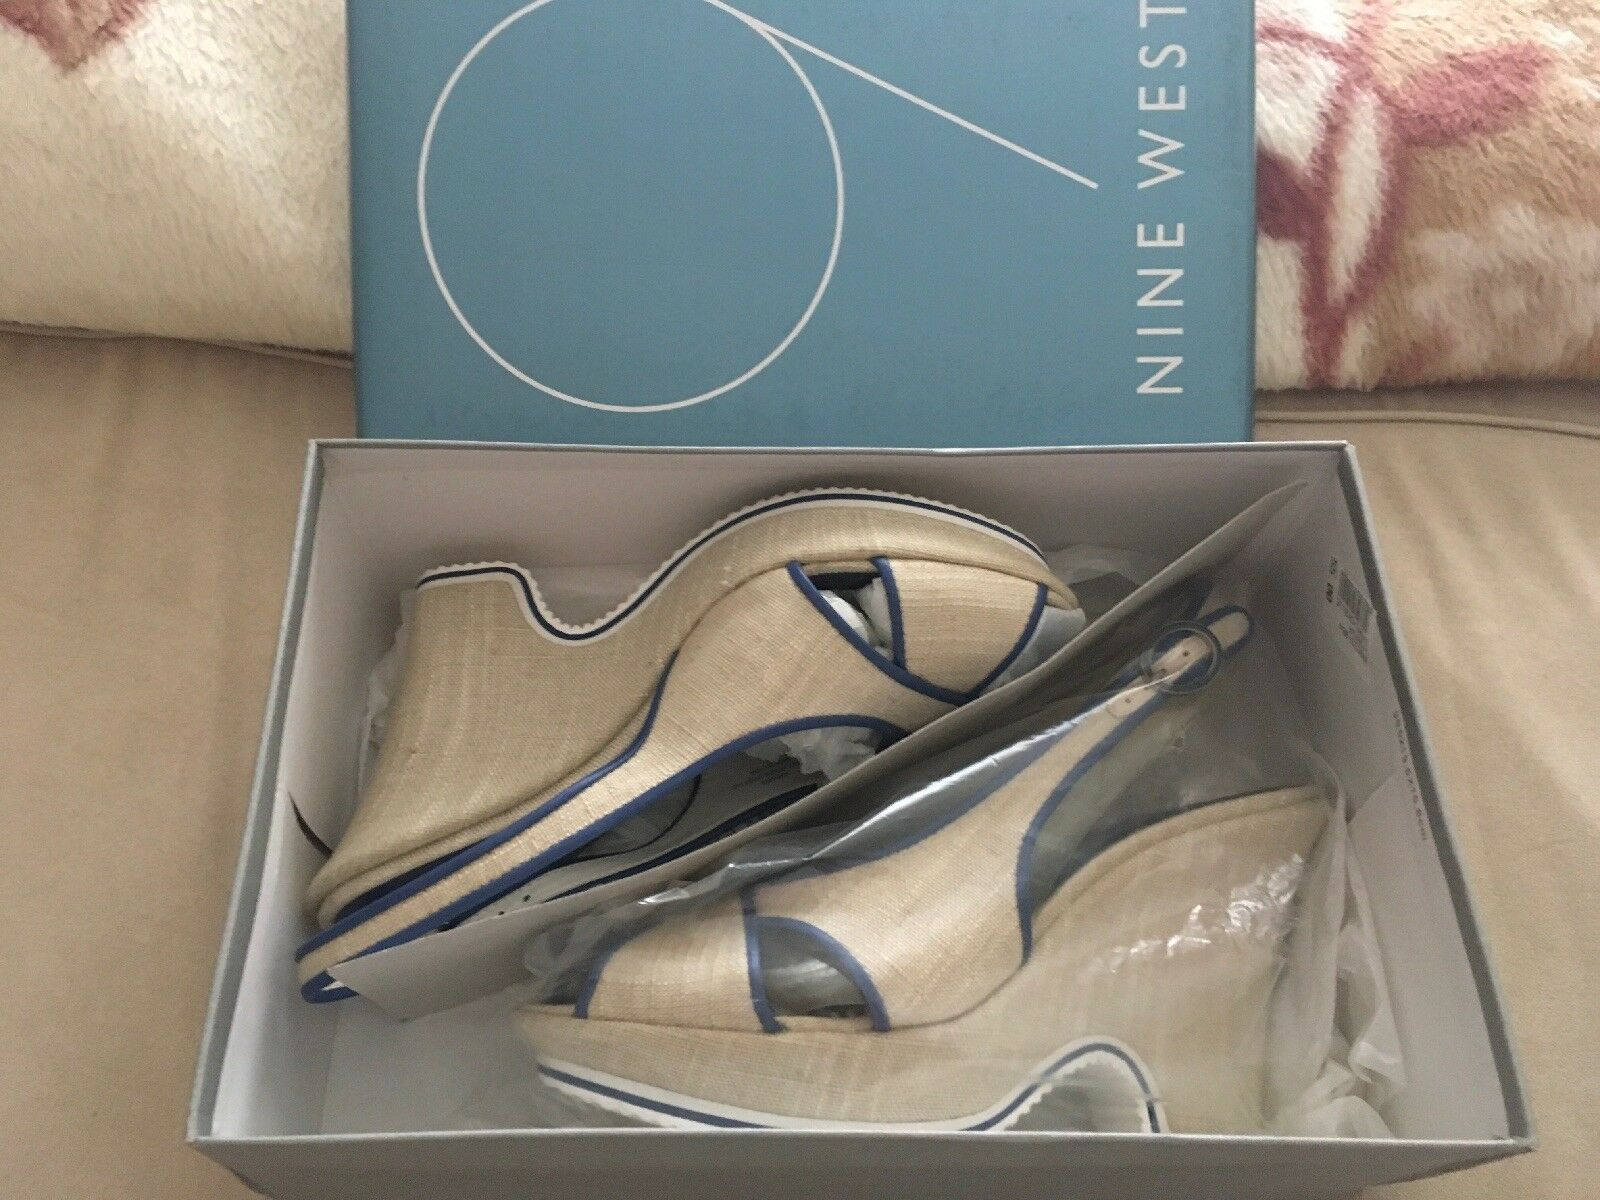 NINE WEST NWDARVA Gorgeous Canvas  Sandales UK6(US8) Schuhes Heels Ivory/Blau Größe UK6(US8) Sandales 2d2d8f